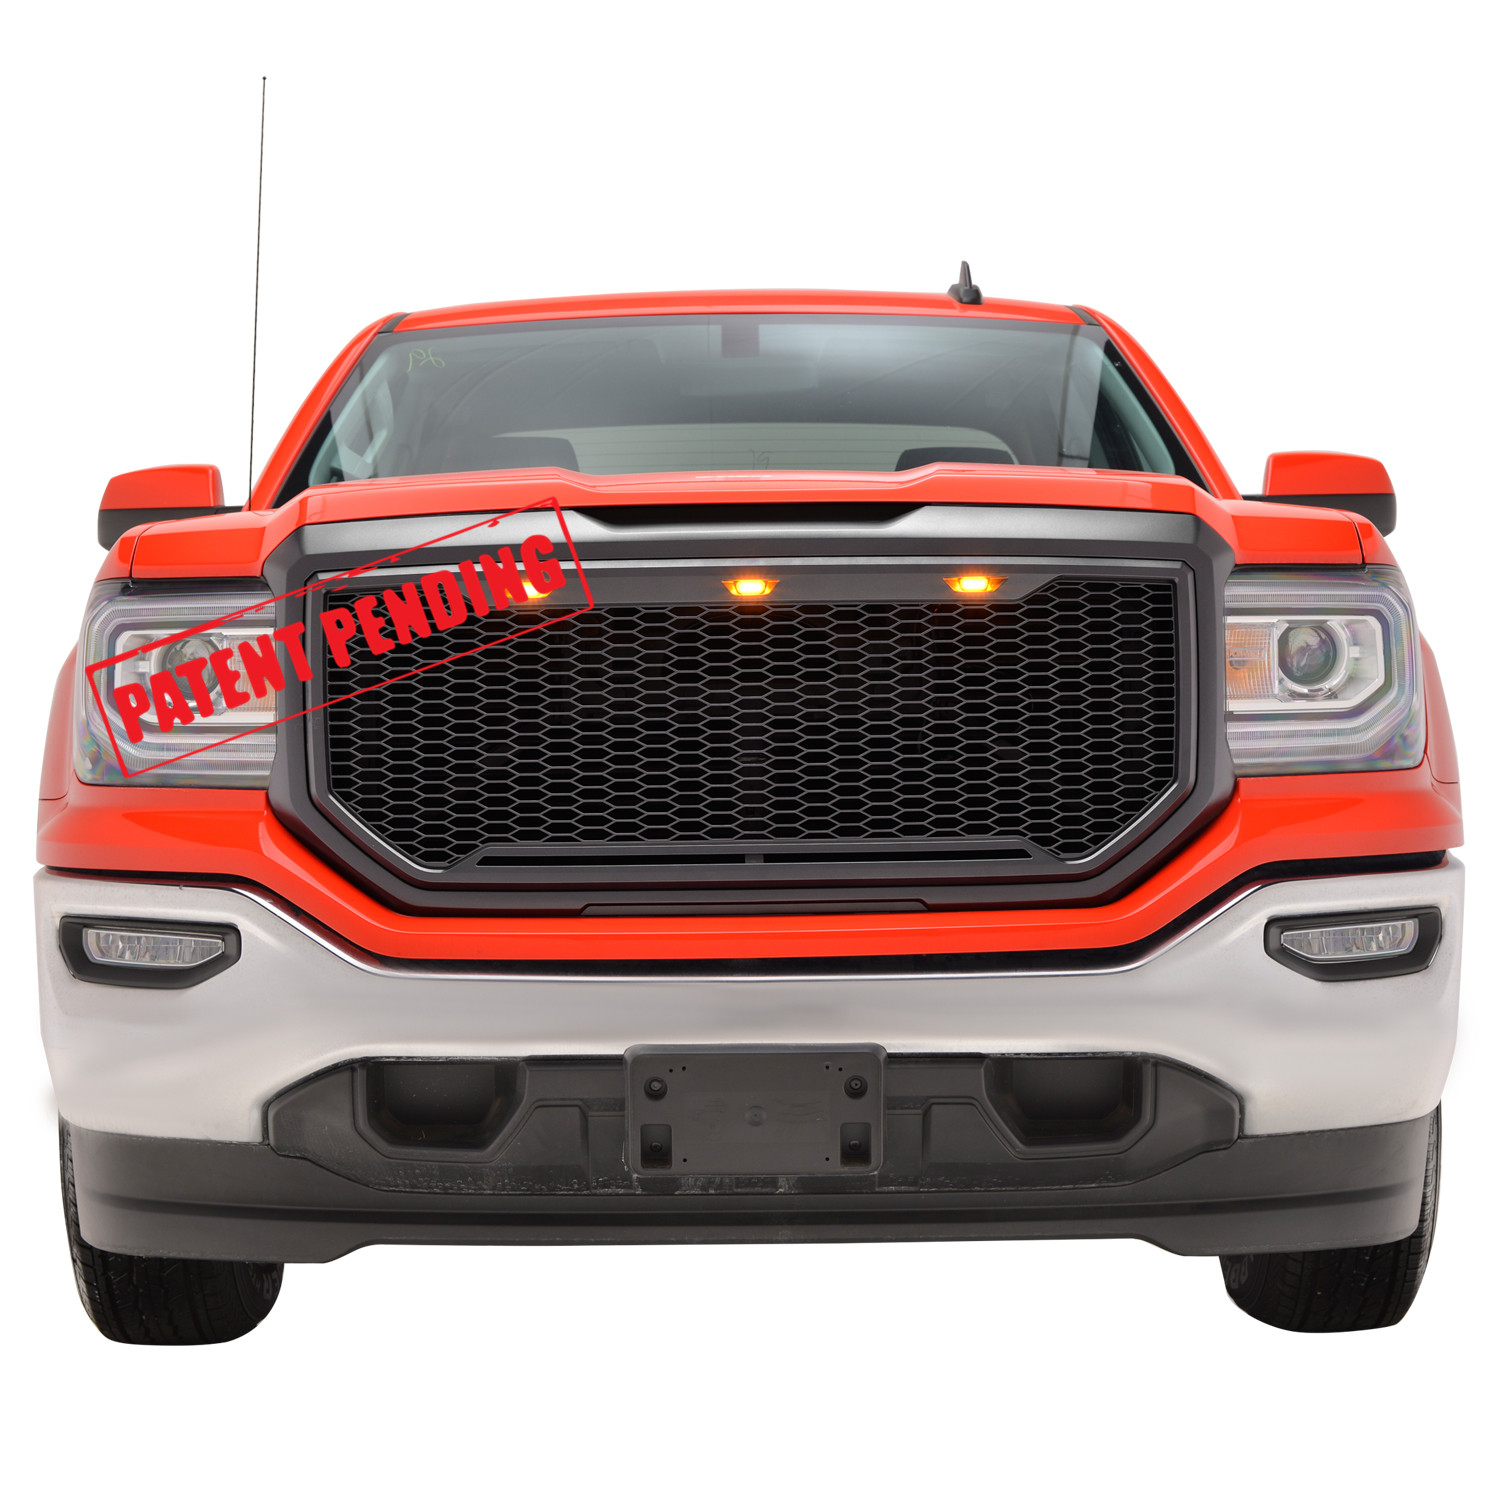 Matte Black Fit for 16-18 Toyota Tacoma EAG Replacement Upper Grille Front Full Grill with Amber LED Lights